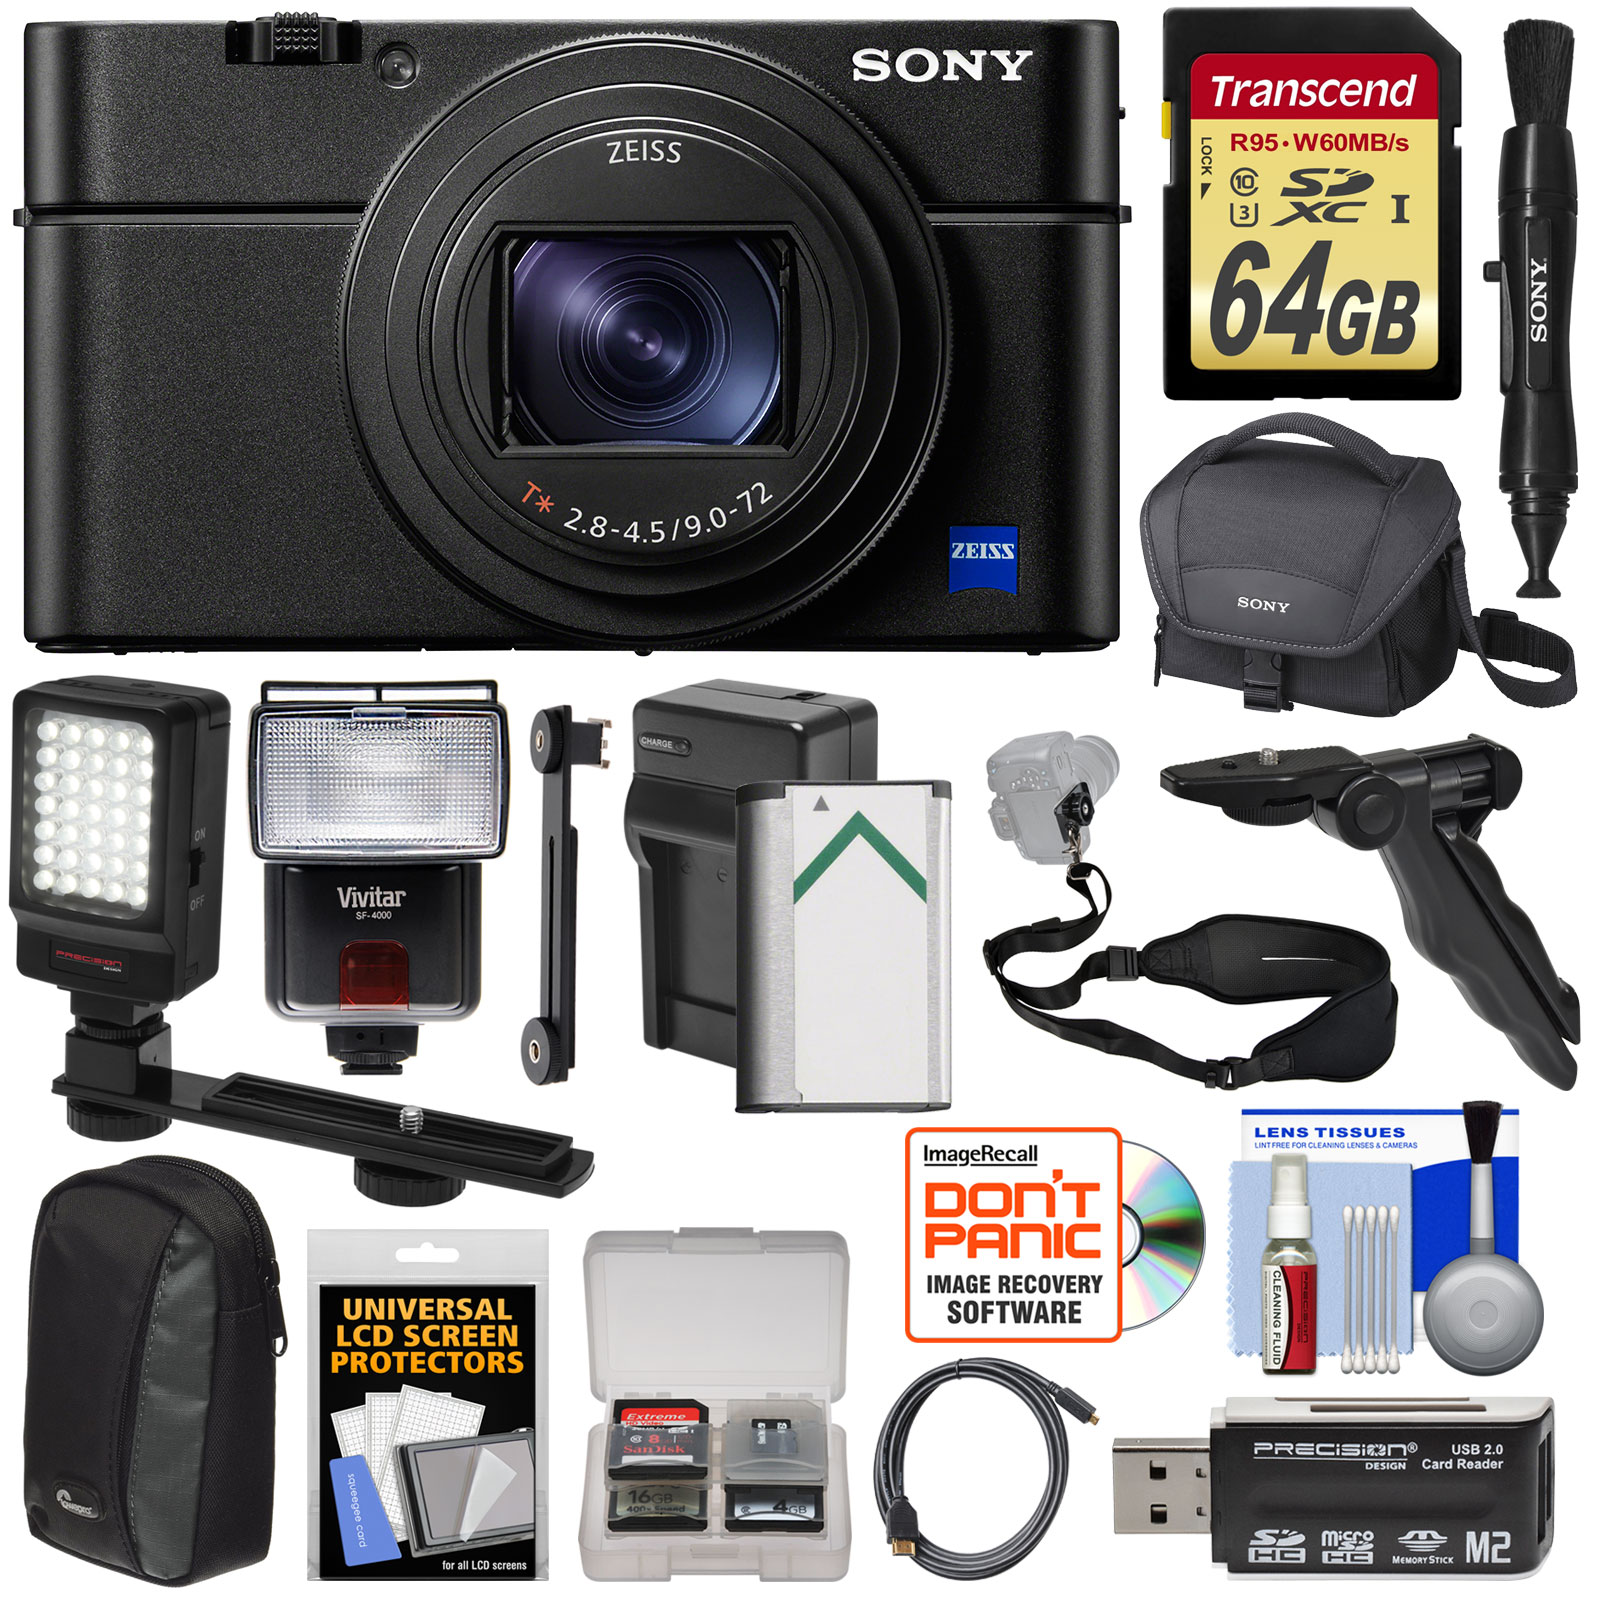 Sony Cyber-Shot DSC-RX100 VI 4K Wi-Fi Digital Camera with 64GB Card + Battery & Charger + Cases + Flash + LED... by Sony